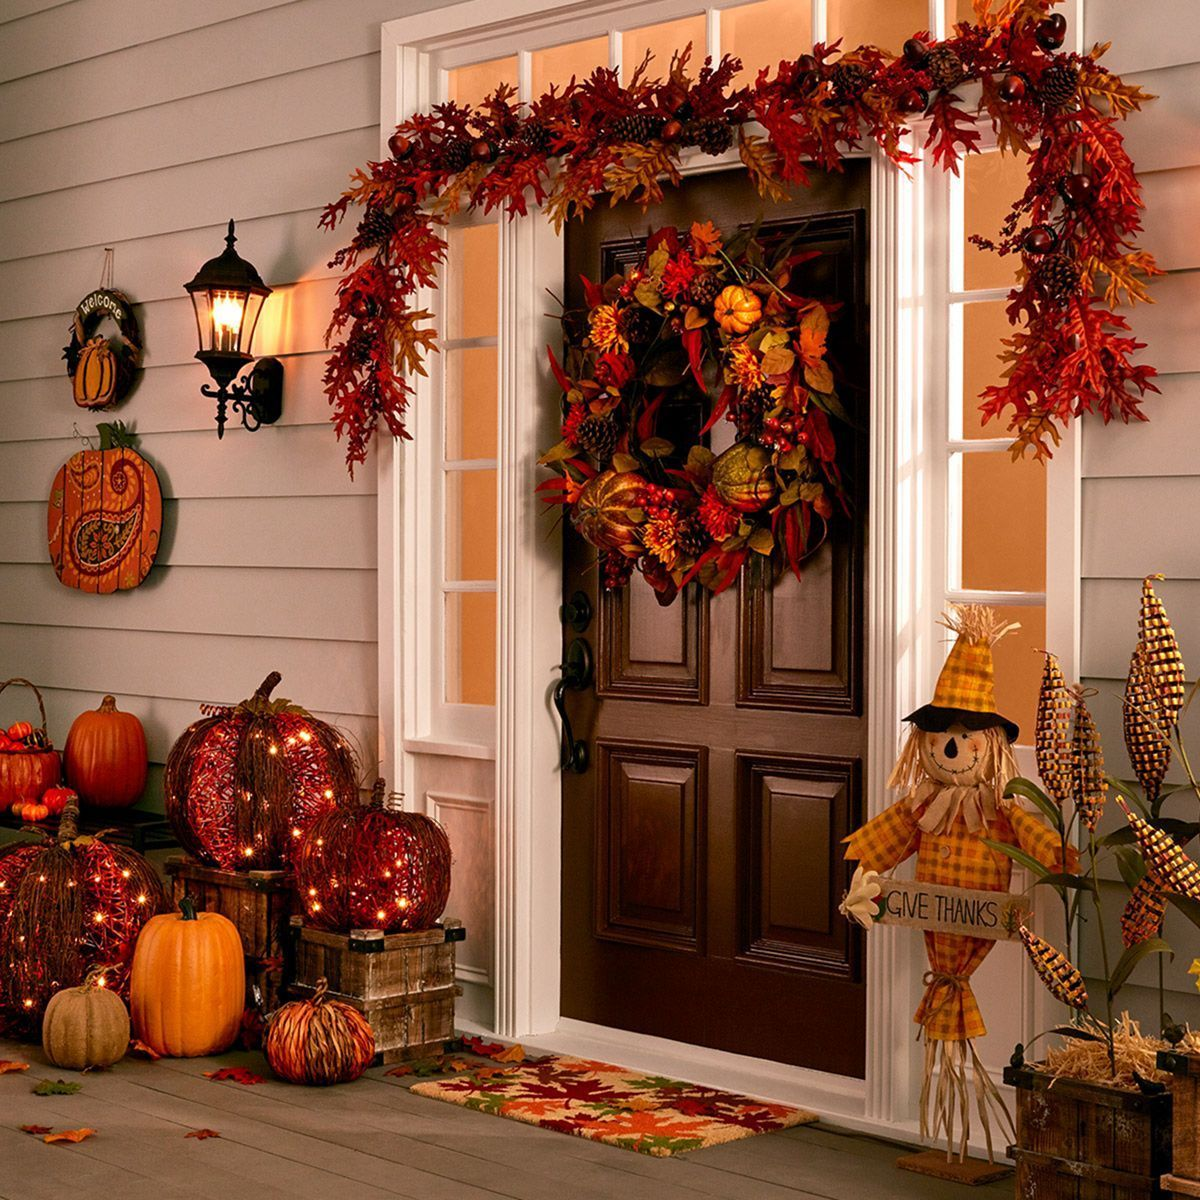 15 Beautiful Autumn Decoration Ideas For The Beauty Of Your Home Thanksgiving Decorations Outdoor Autumn Decorating Fall Decorations Porch